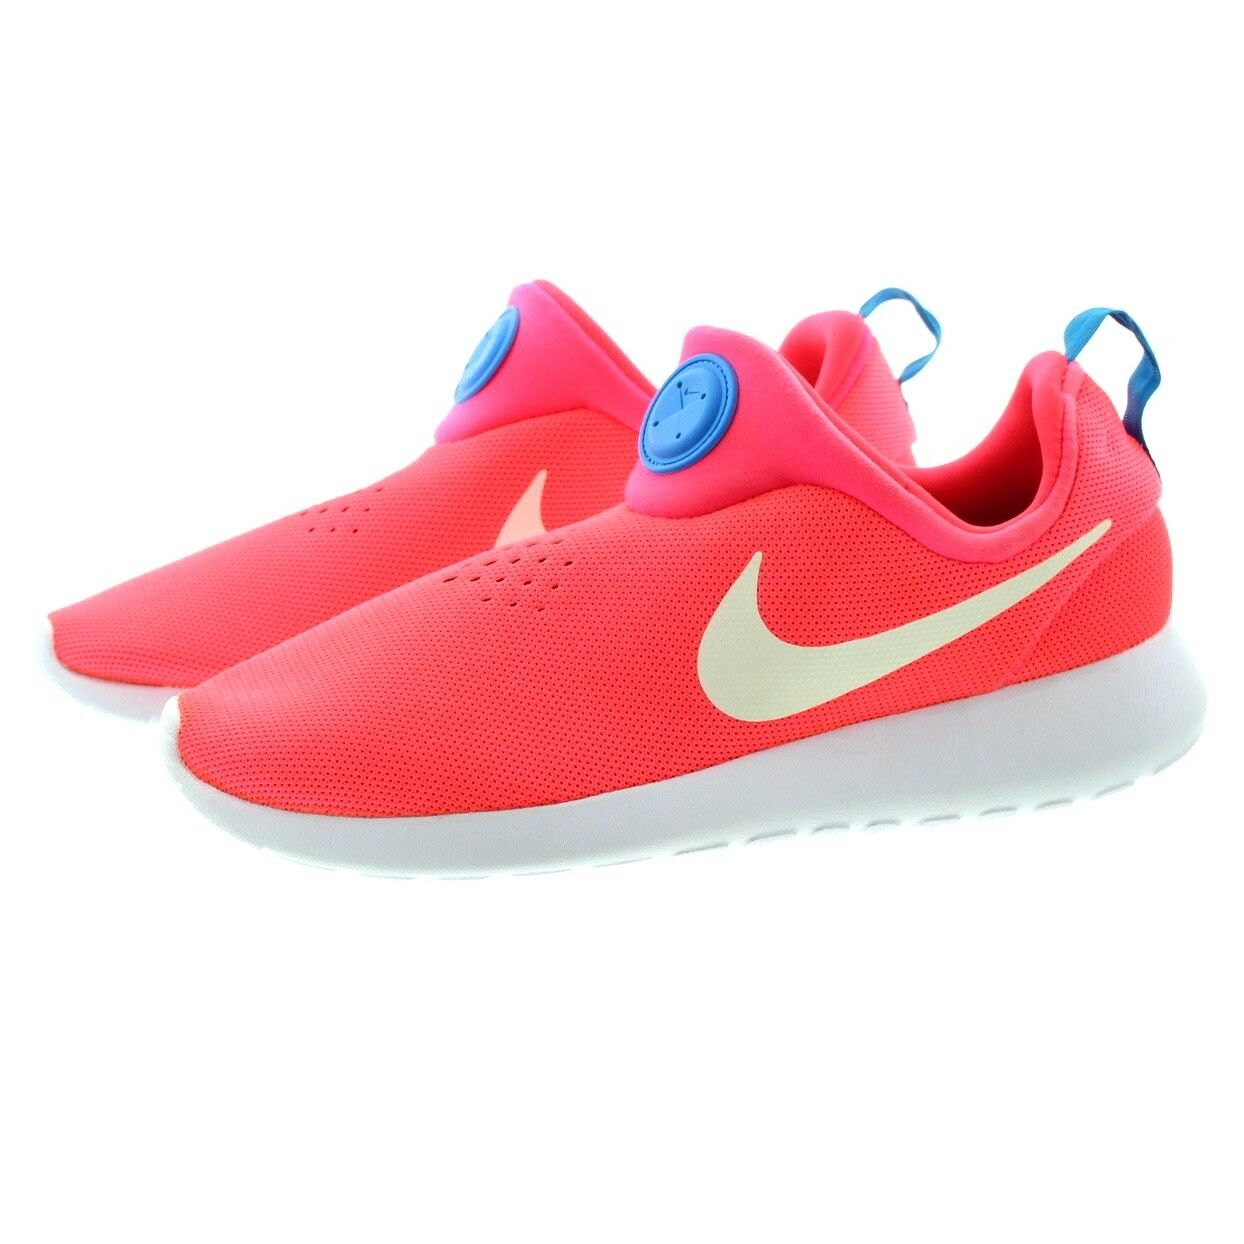 promo code ea6ec 8c755 Nike 644432-601 Mens Mens Mens Roshe Run Slip On Trainer Casual Running  Shoes Sneakers df0ec3